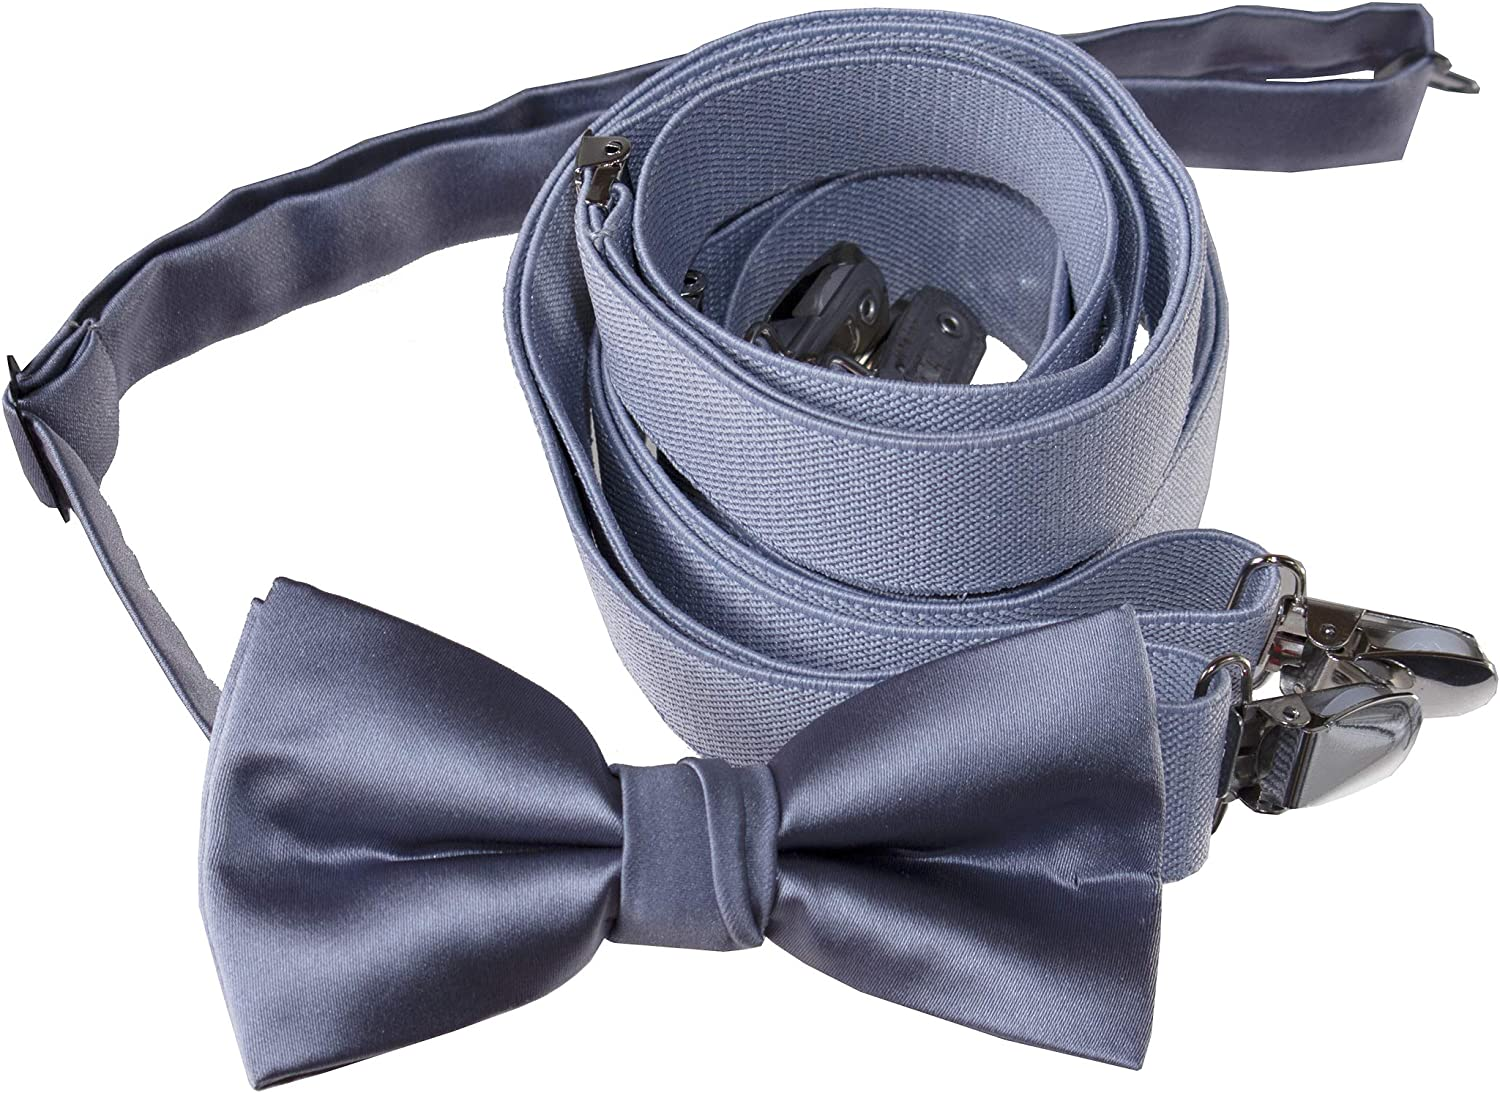 Bow Tie Denver Mall and Suspender Set Kids in Men's Ranking TOP10 Sizes Combo